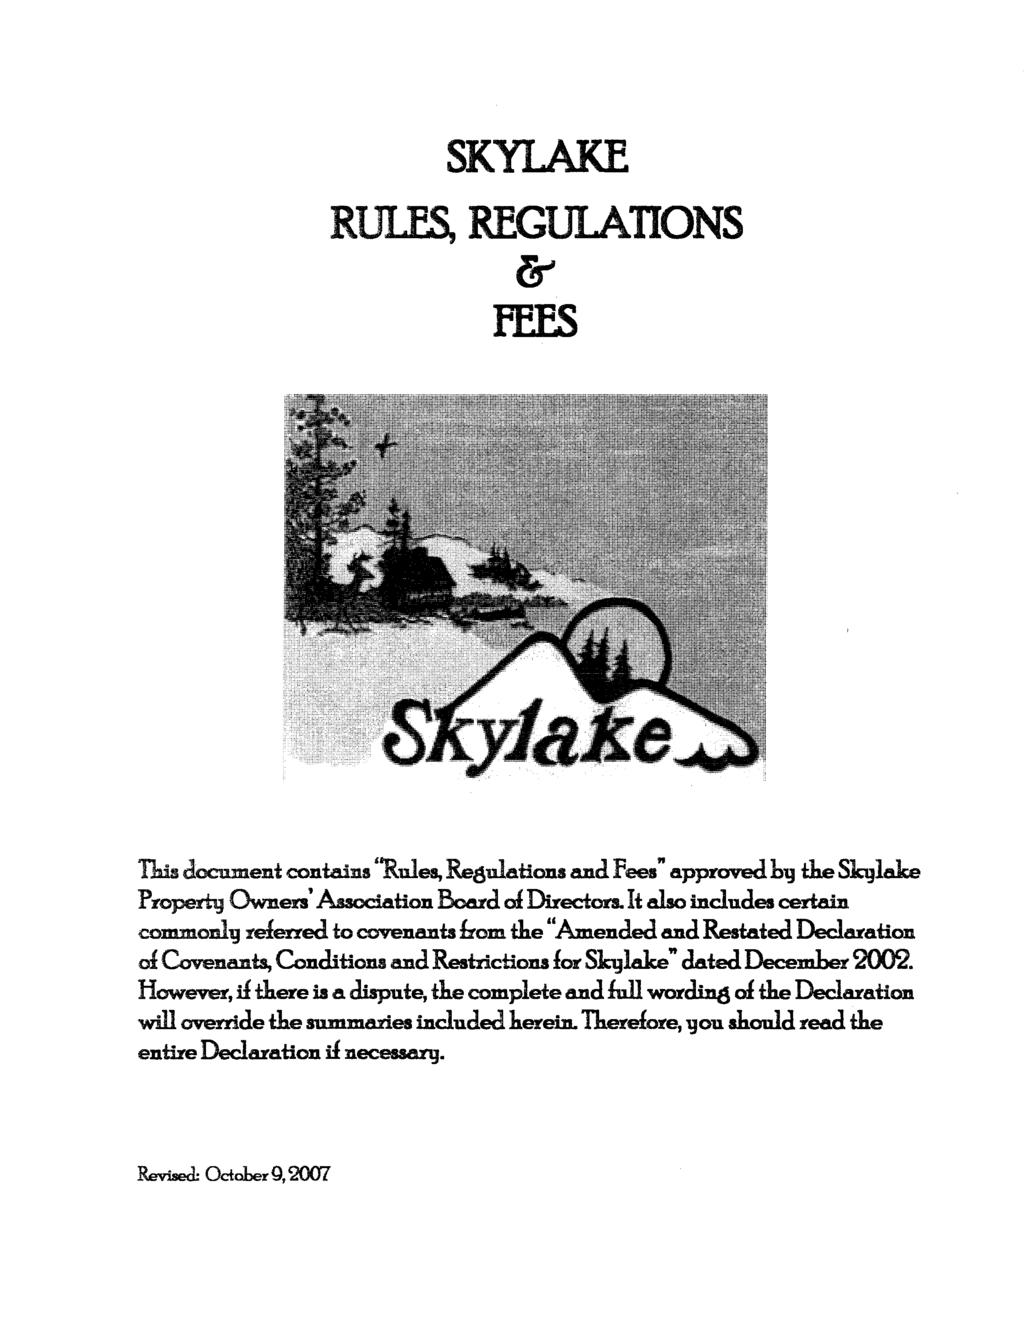 "SKYLAKE RULES, REGUIATIONS & FEFS Tb.is document contains 'Rules, Regulations and Fees"" approved. hg the Slajlake Properlg Owners' Association Board al Directors. It also indudes certain commonl."